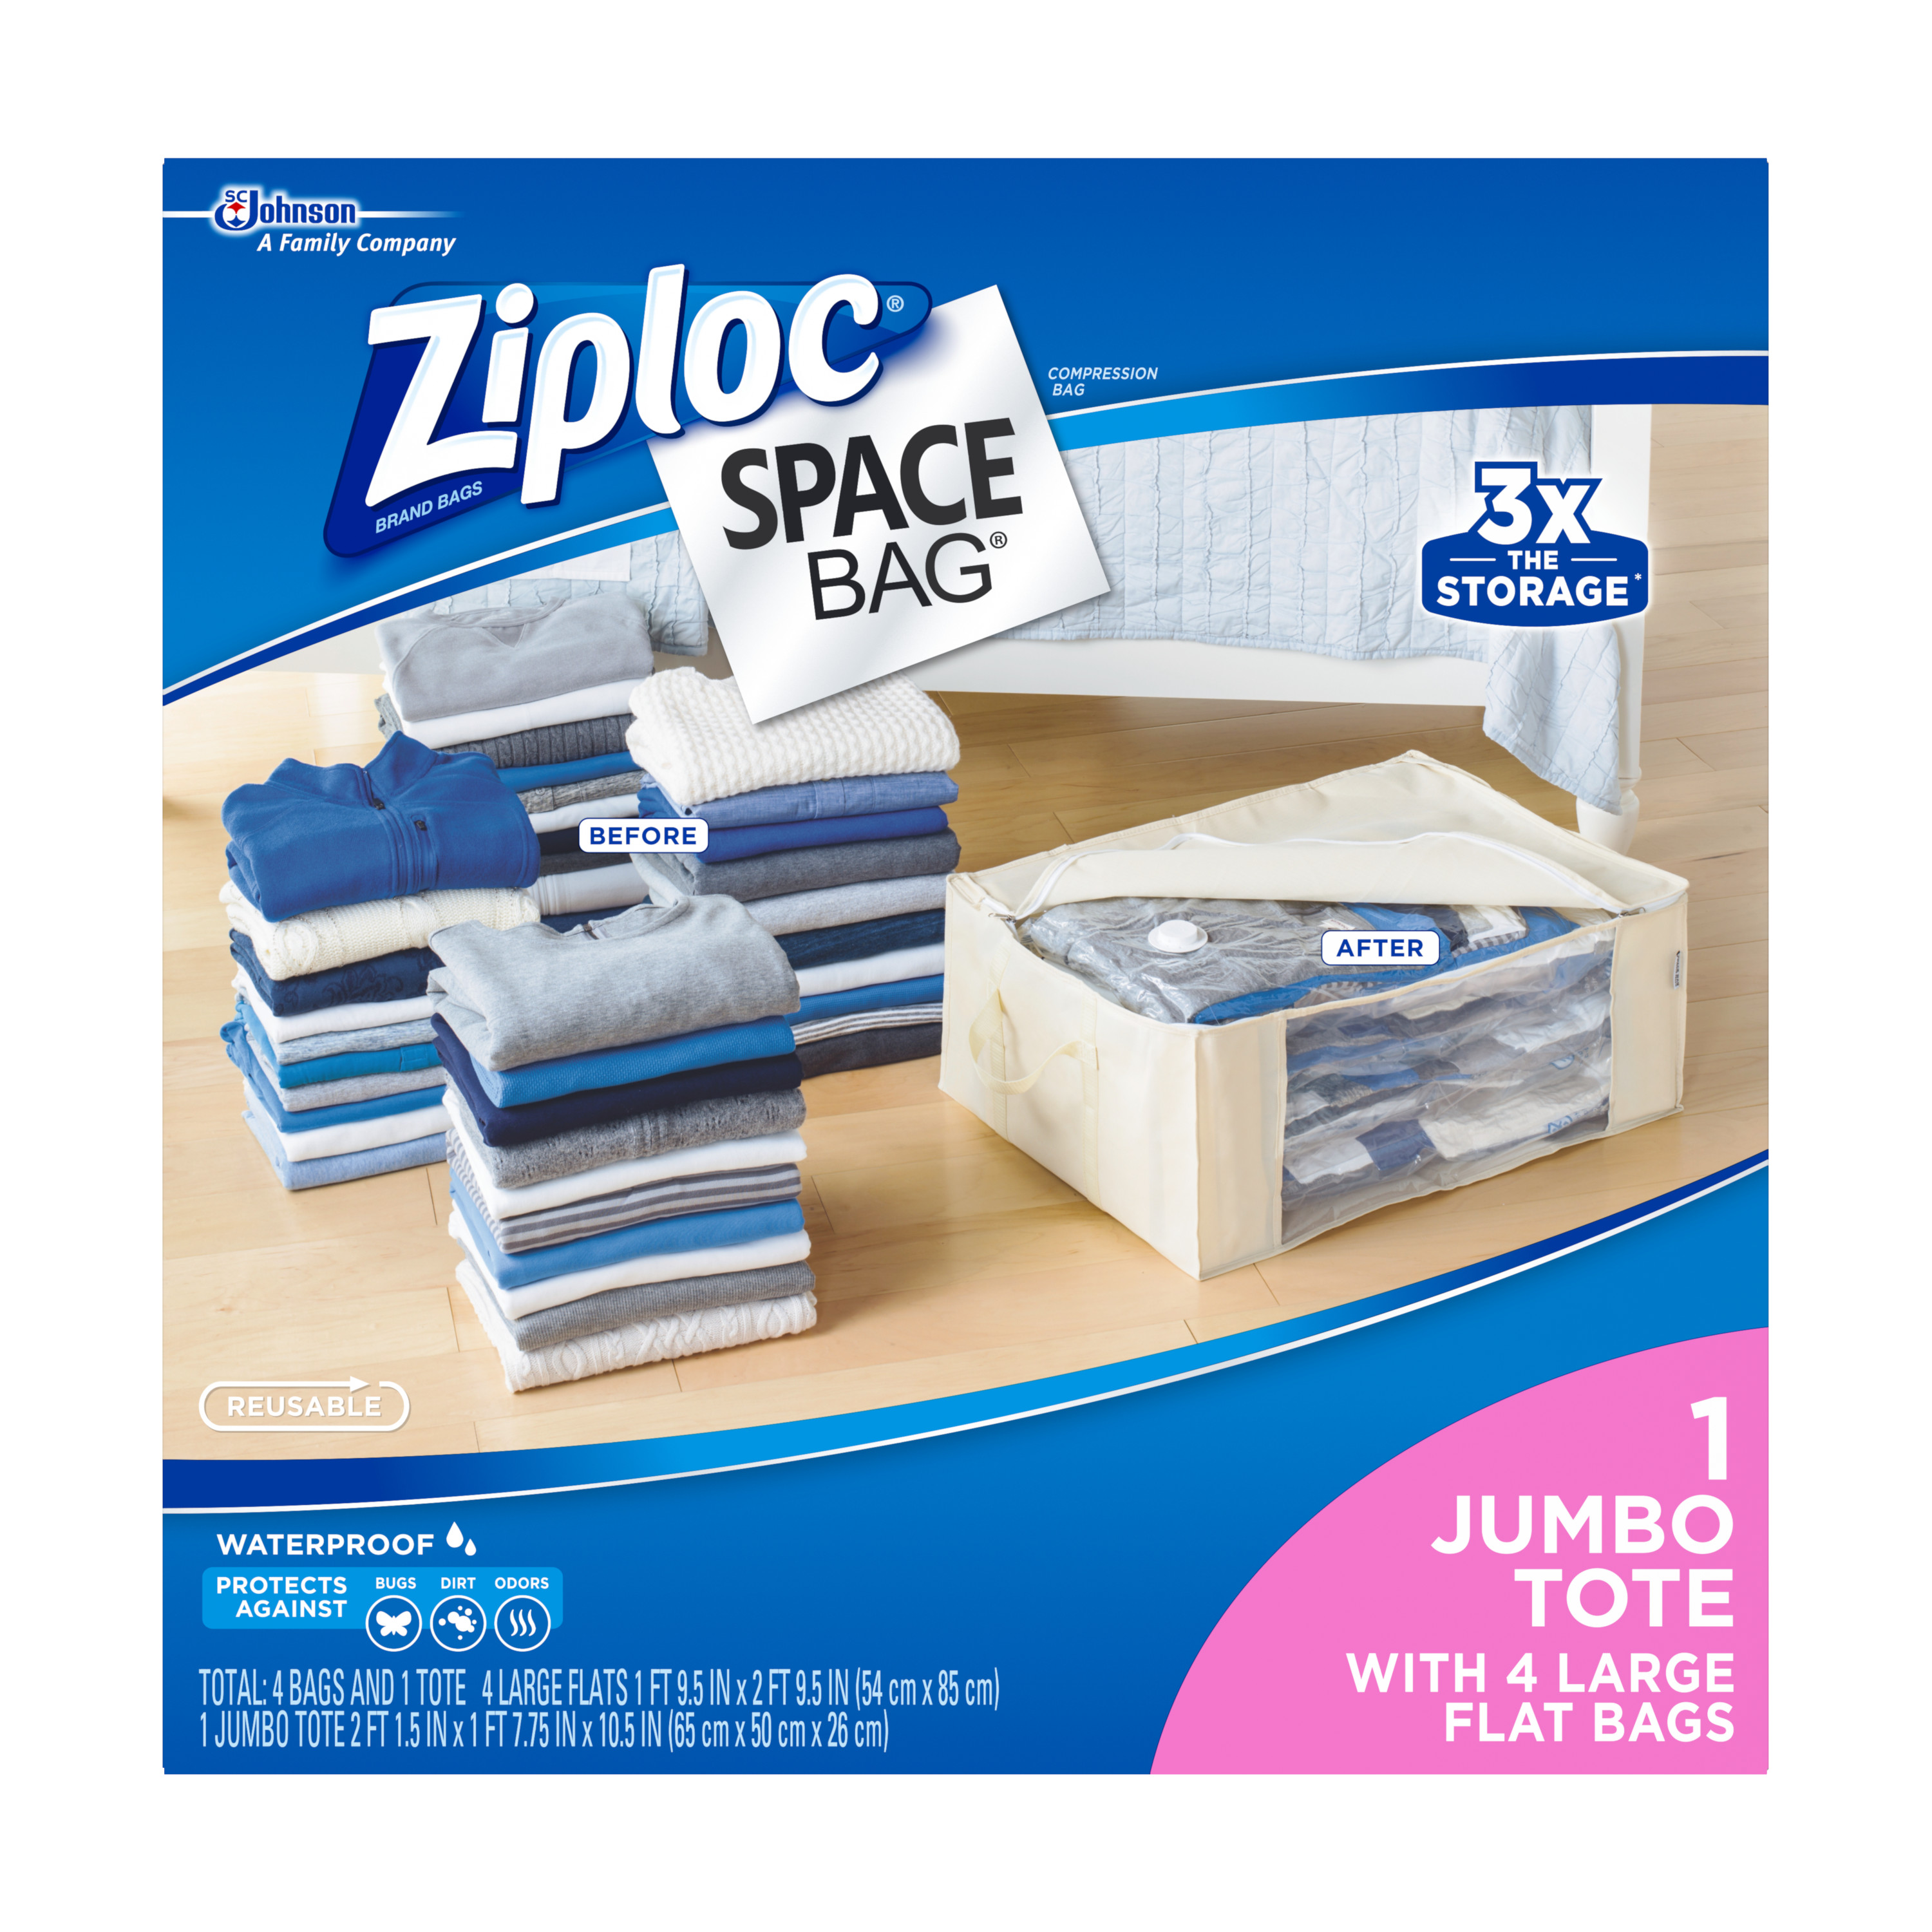 Ziploc Space Bag 5 Count: 4L Flat Bags, 1 Underbed Tote